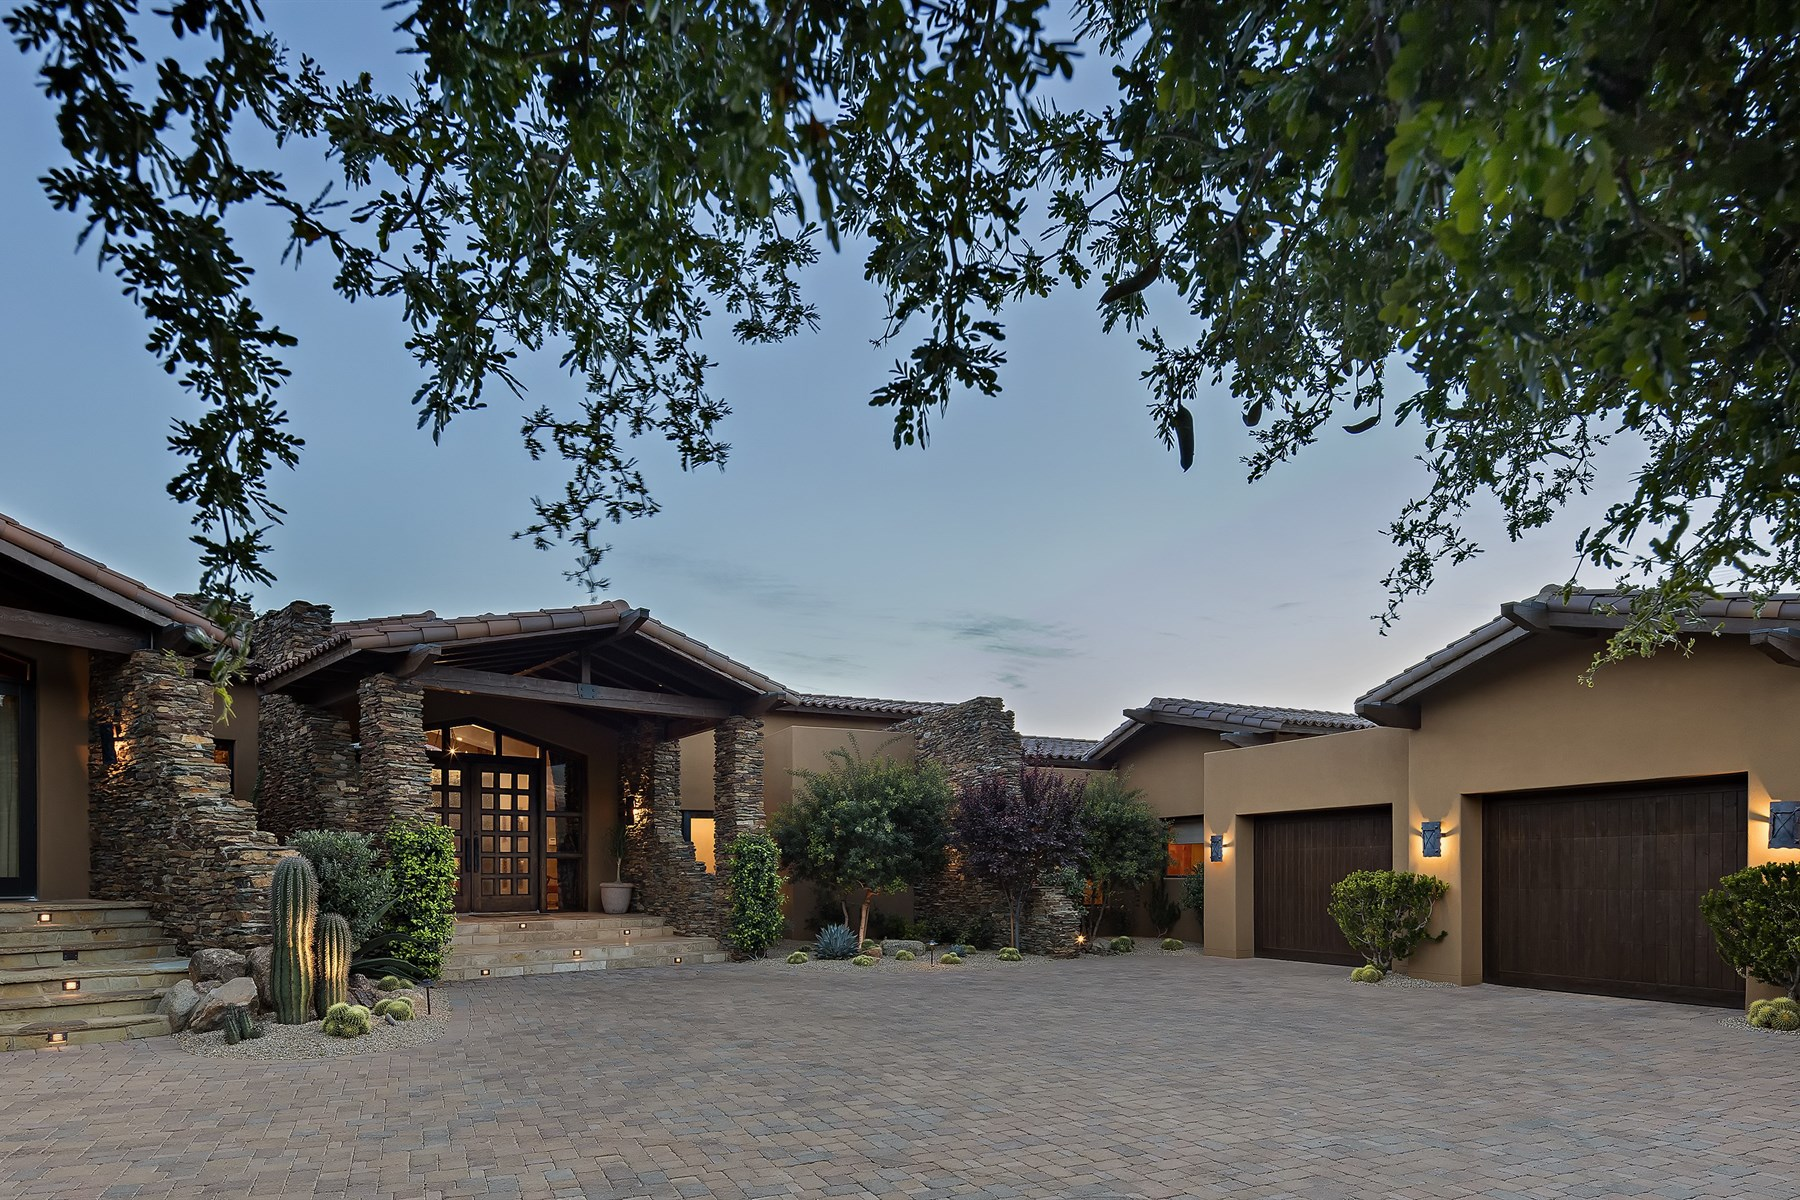 Maison unifamiliale pour l Vente à Truly original home with the finest of finishes on a premier home site 9793 E Falling Star Dr Scottsdale, Arizona, 85262 États-Unis